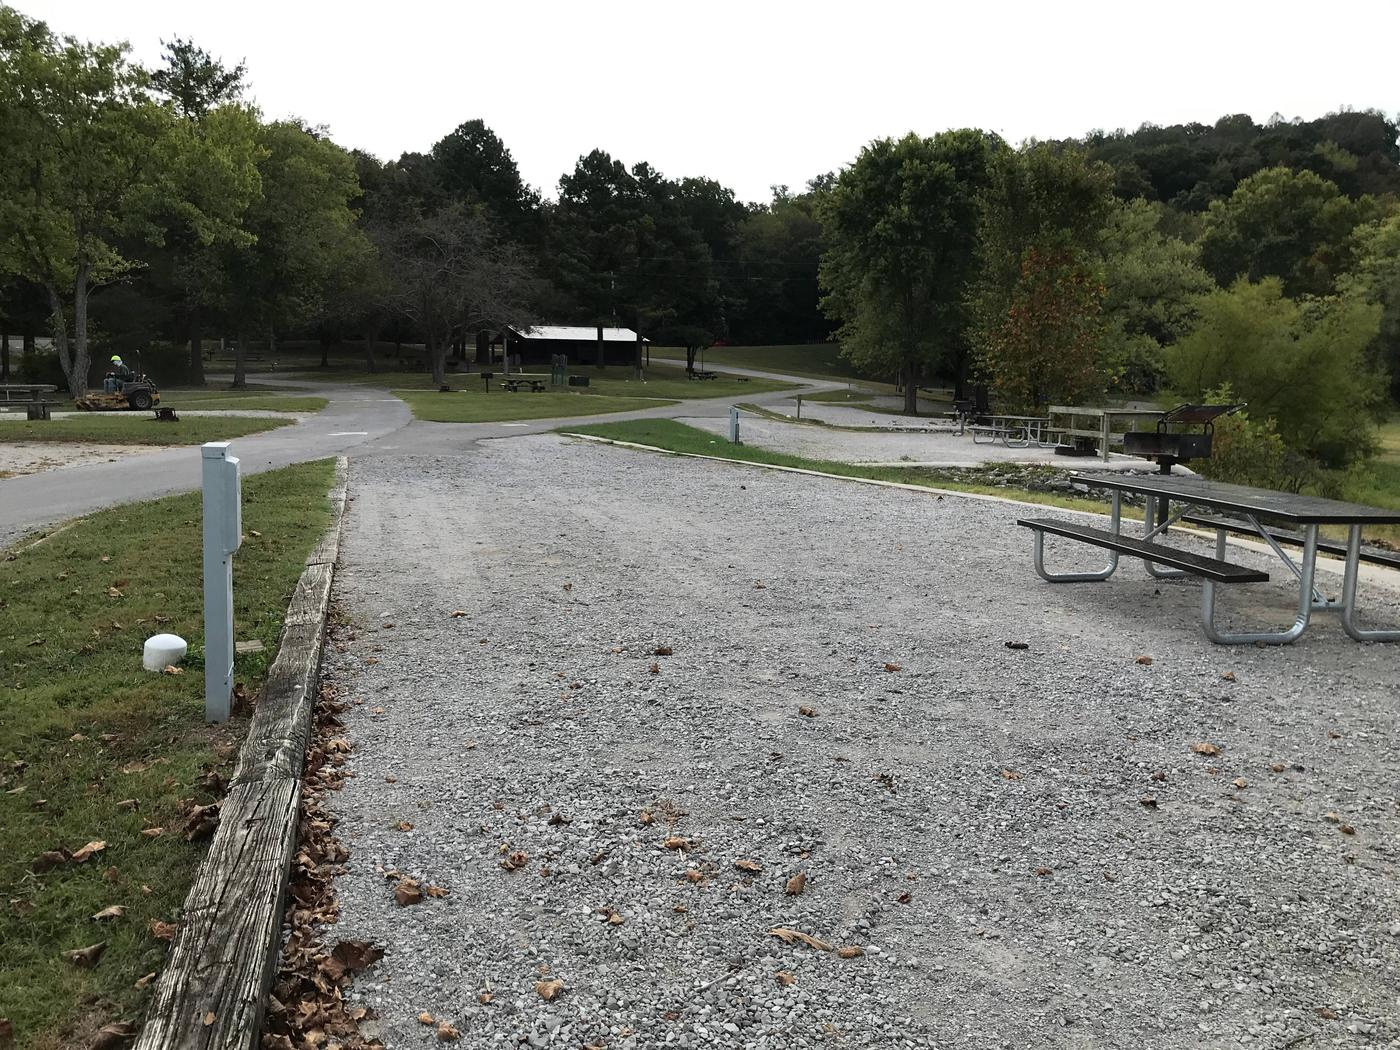 OBEY RIVER PARK SITE # 42 LONG VIEW TOWARD ROADOBEY RIVER PARK SITE # 42 WHITE CAP IS WATER VALVE, NOT SEWER